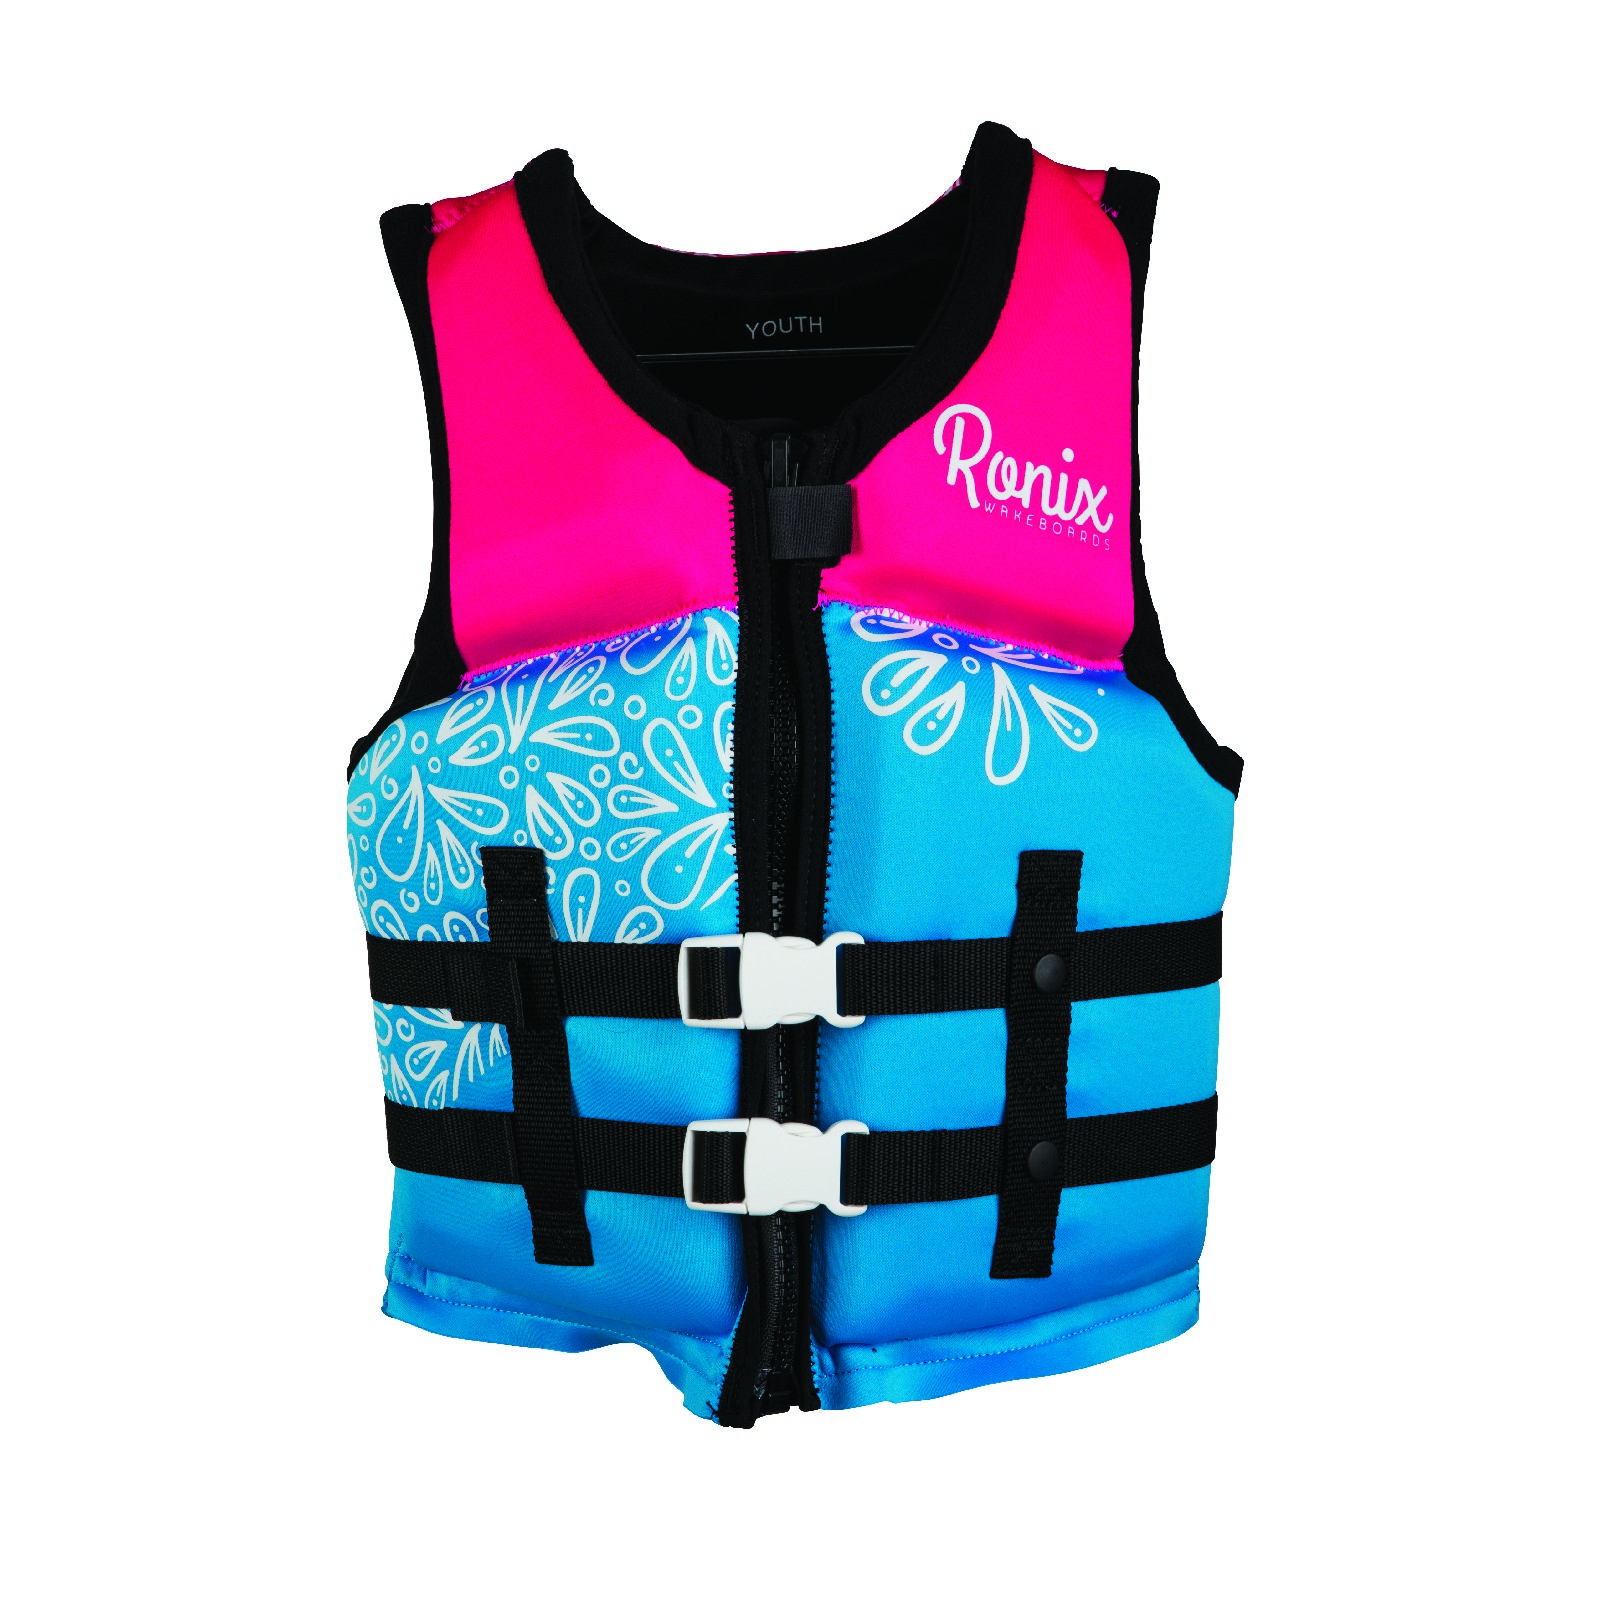 AUGUST GIRL'S NEO VEST - YOUTH 22-40KG RONIX 2019